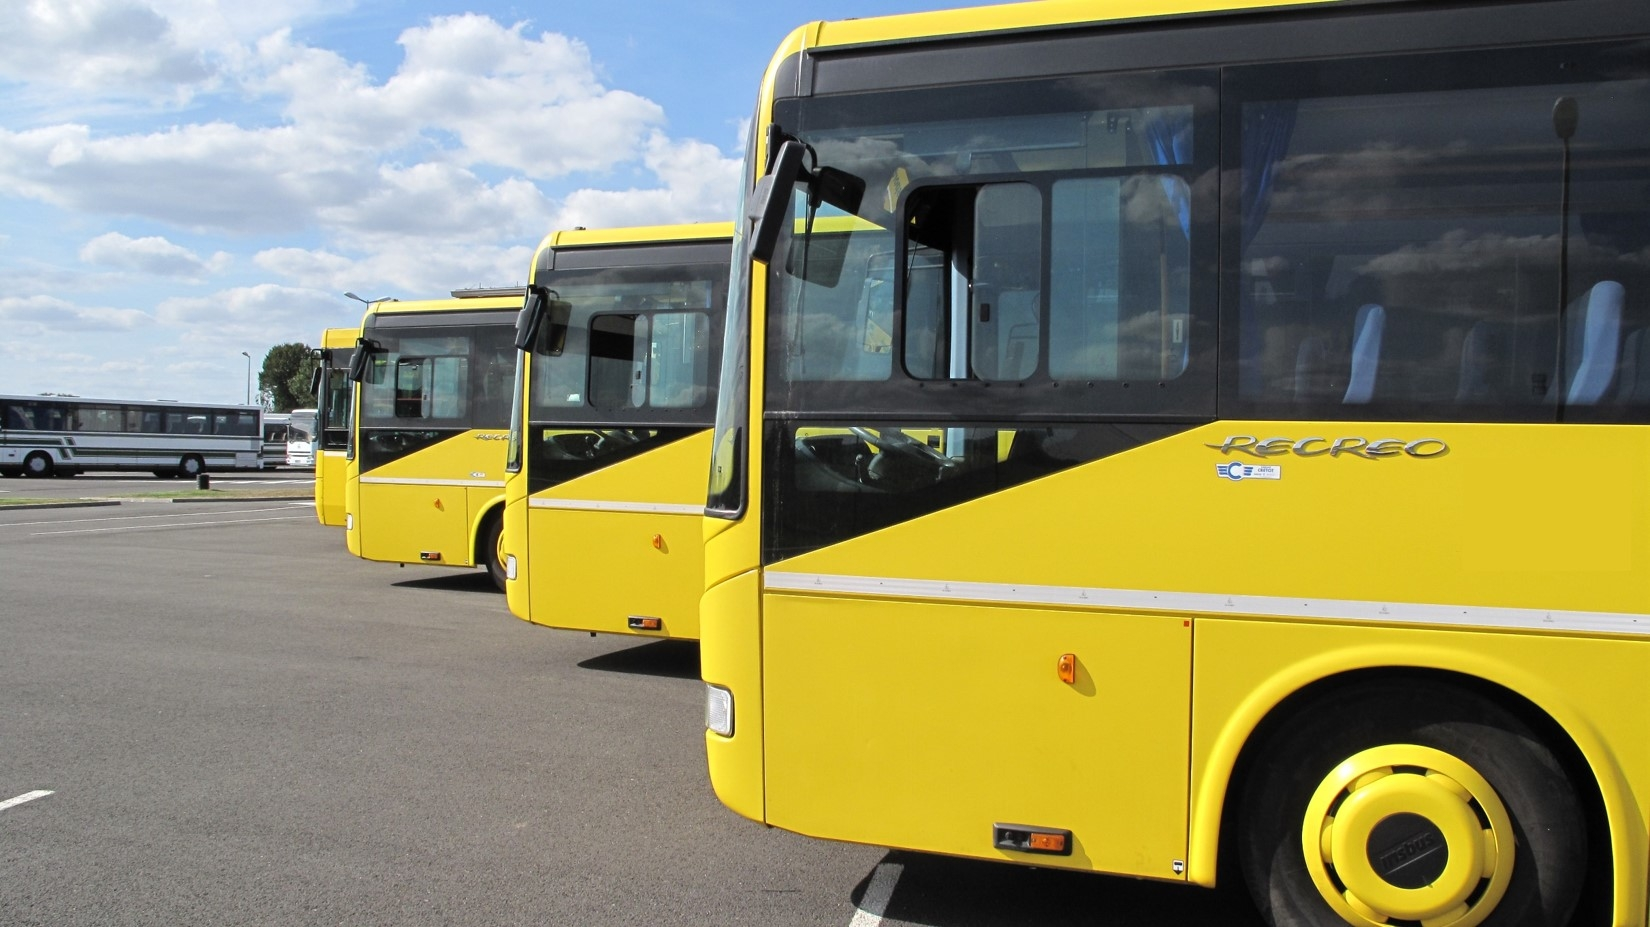 voyages-Mauger-Transport-scolaire-4